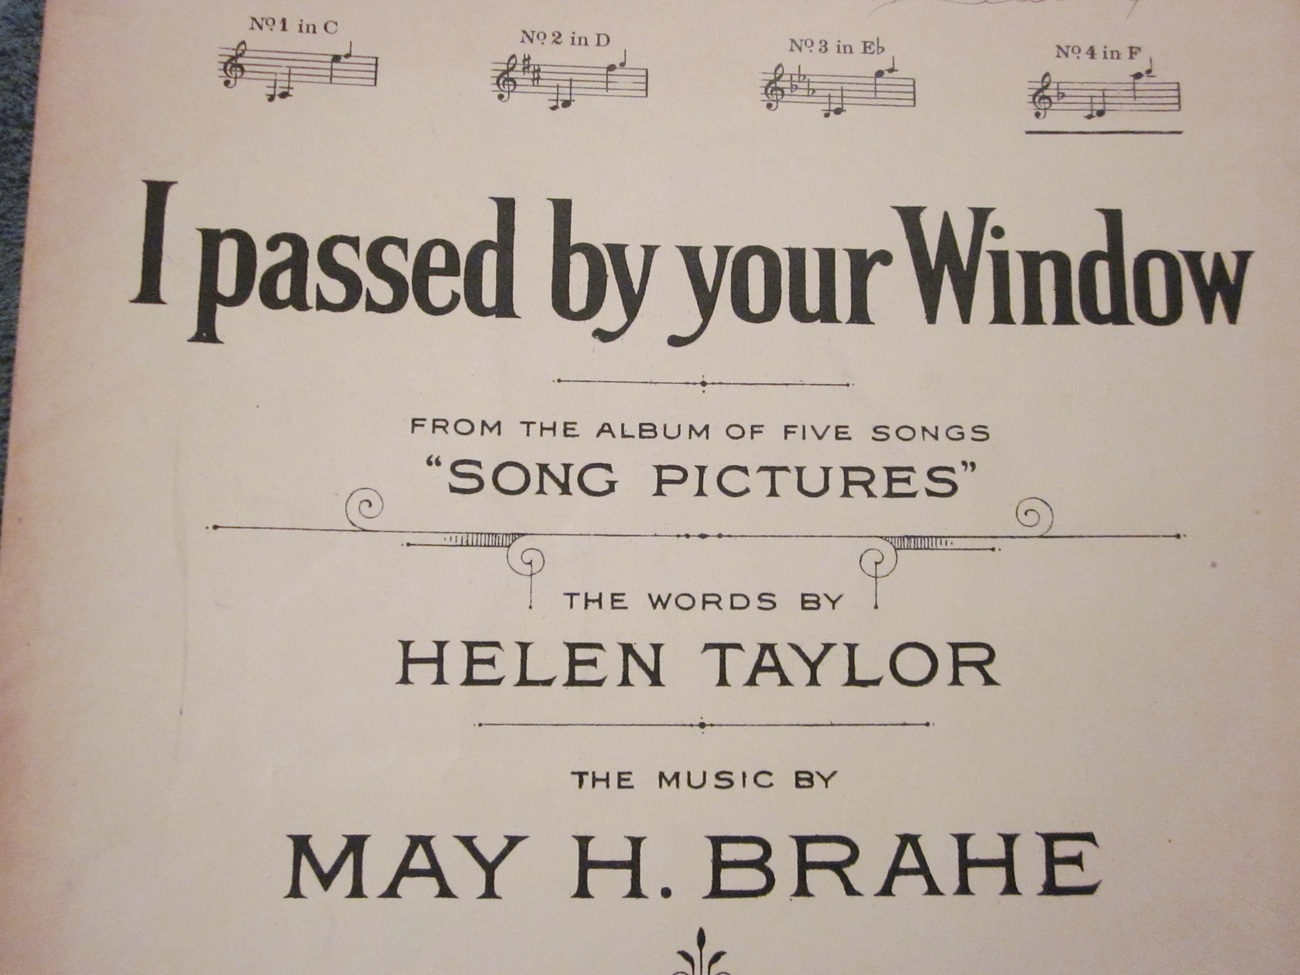 Sheet Music I Passed By Your Window by Taylor and Brahe 1916